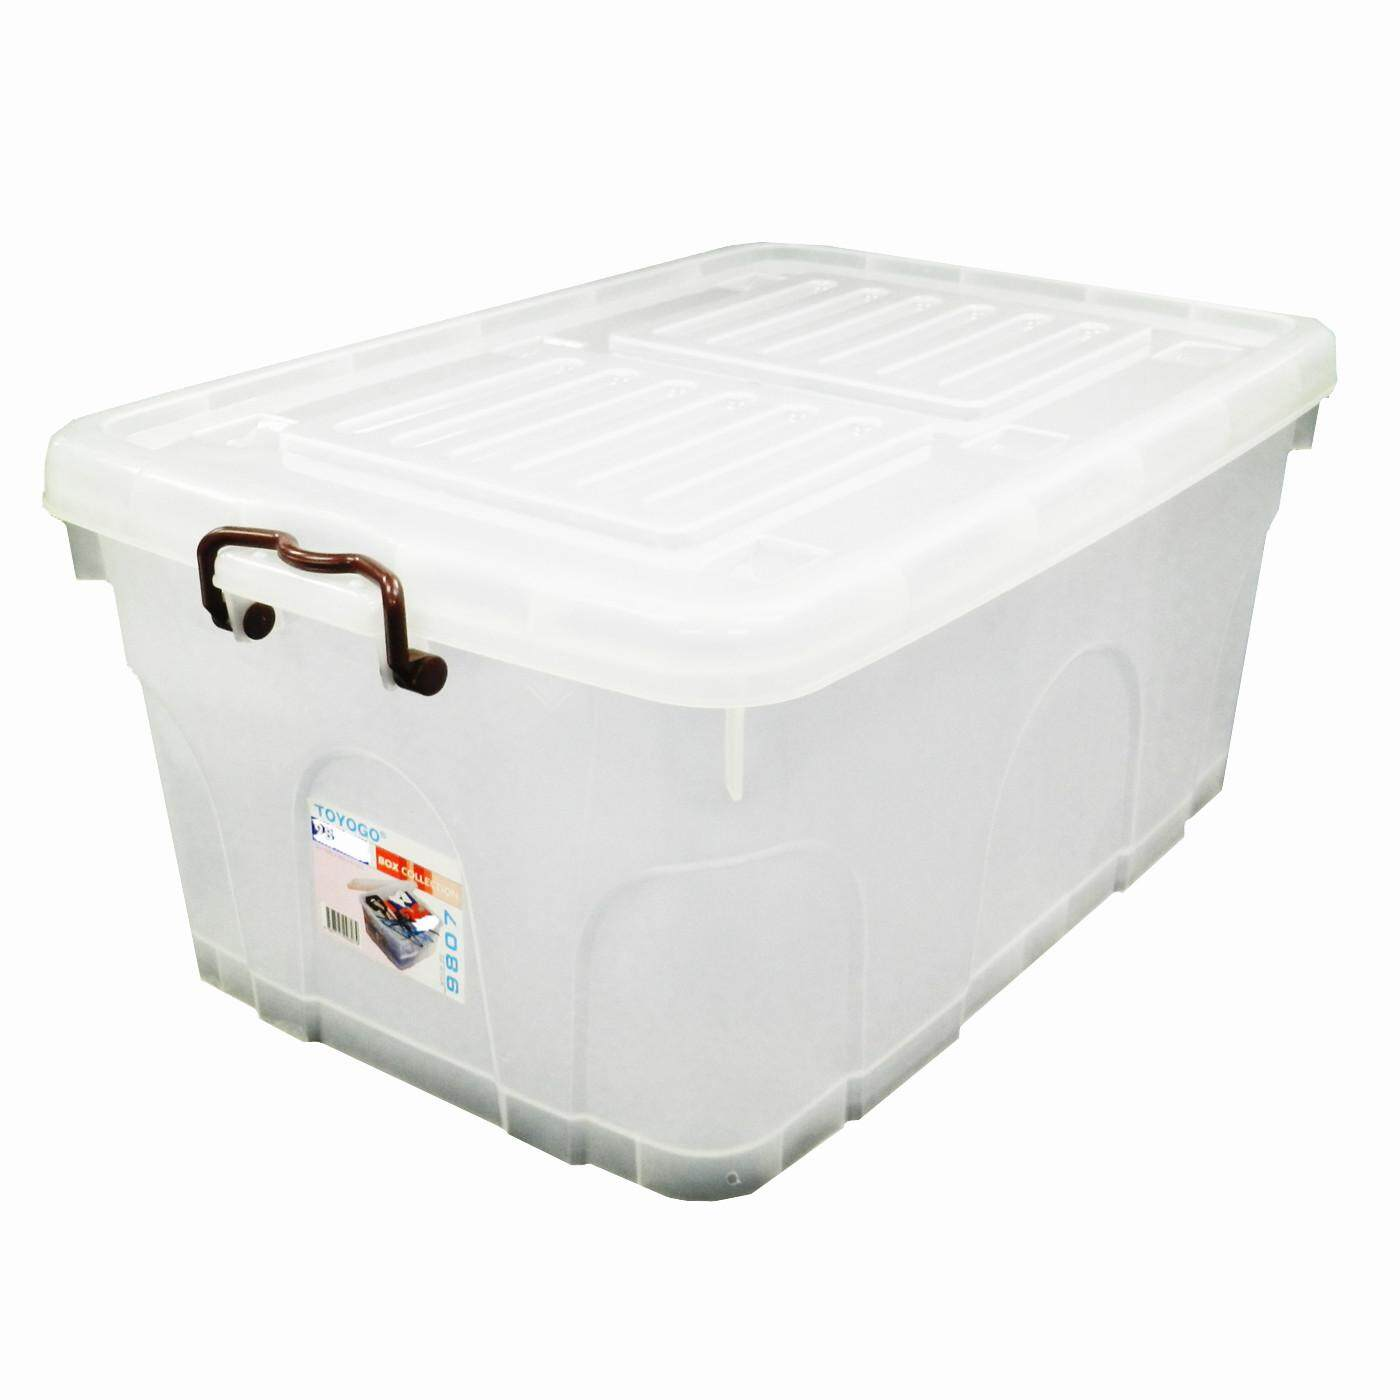 (OW) Toyogo 98 Series 08 Storage Box